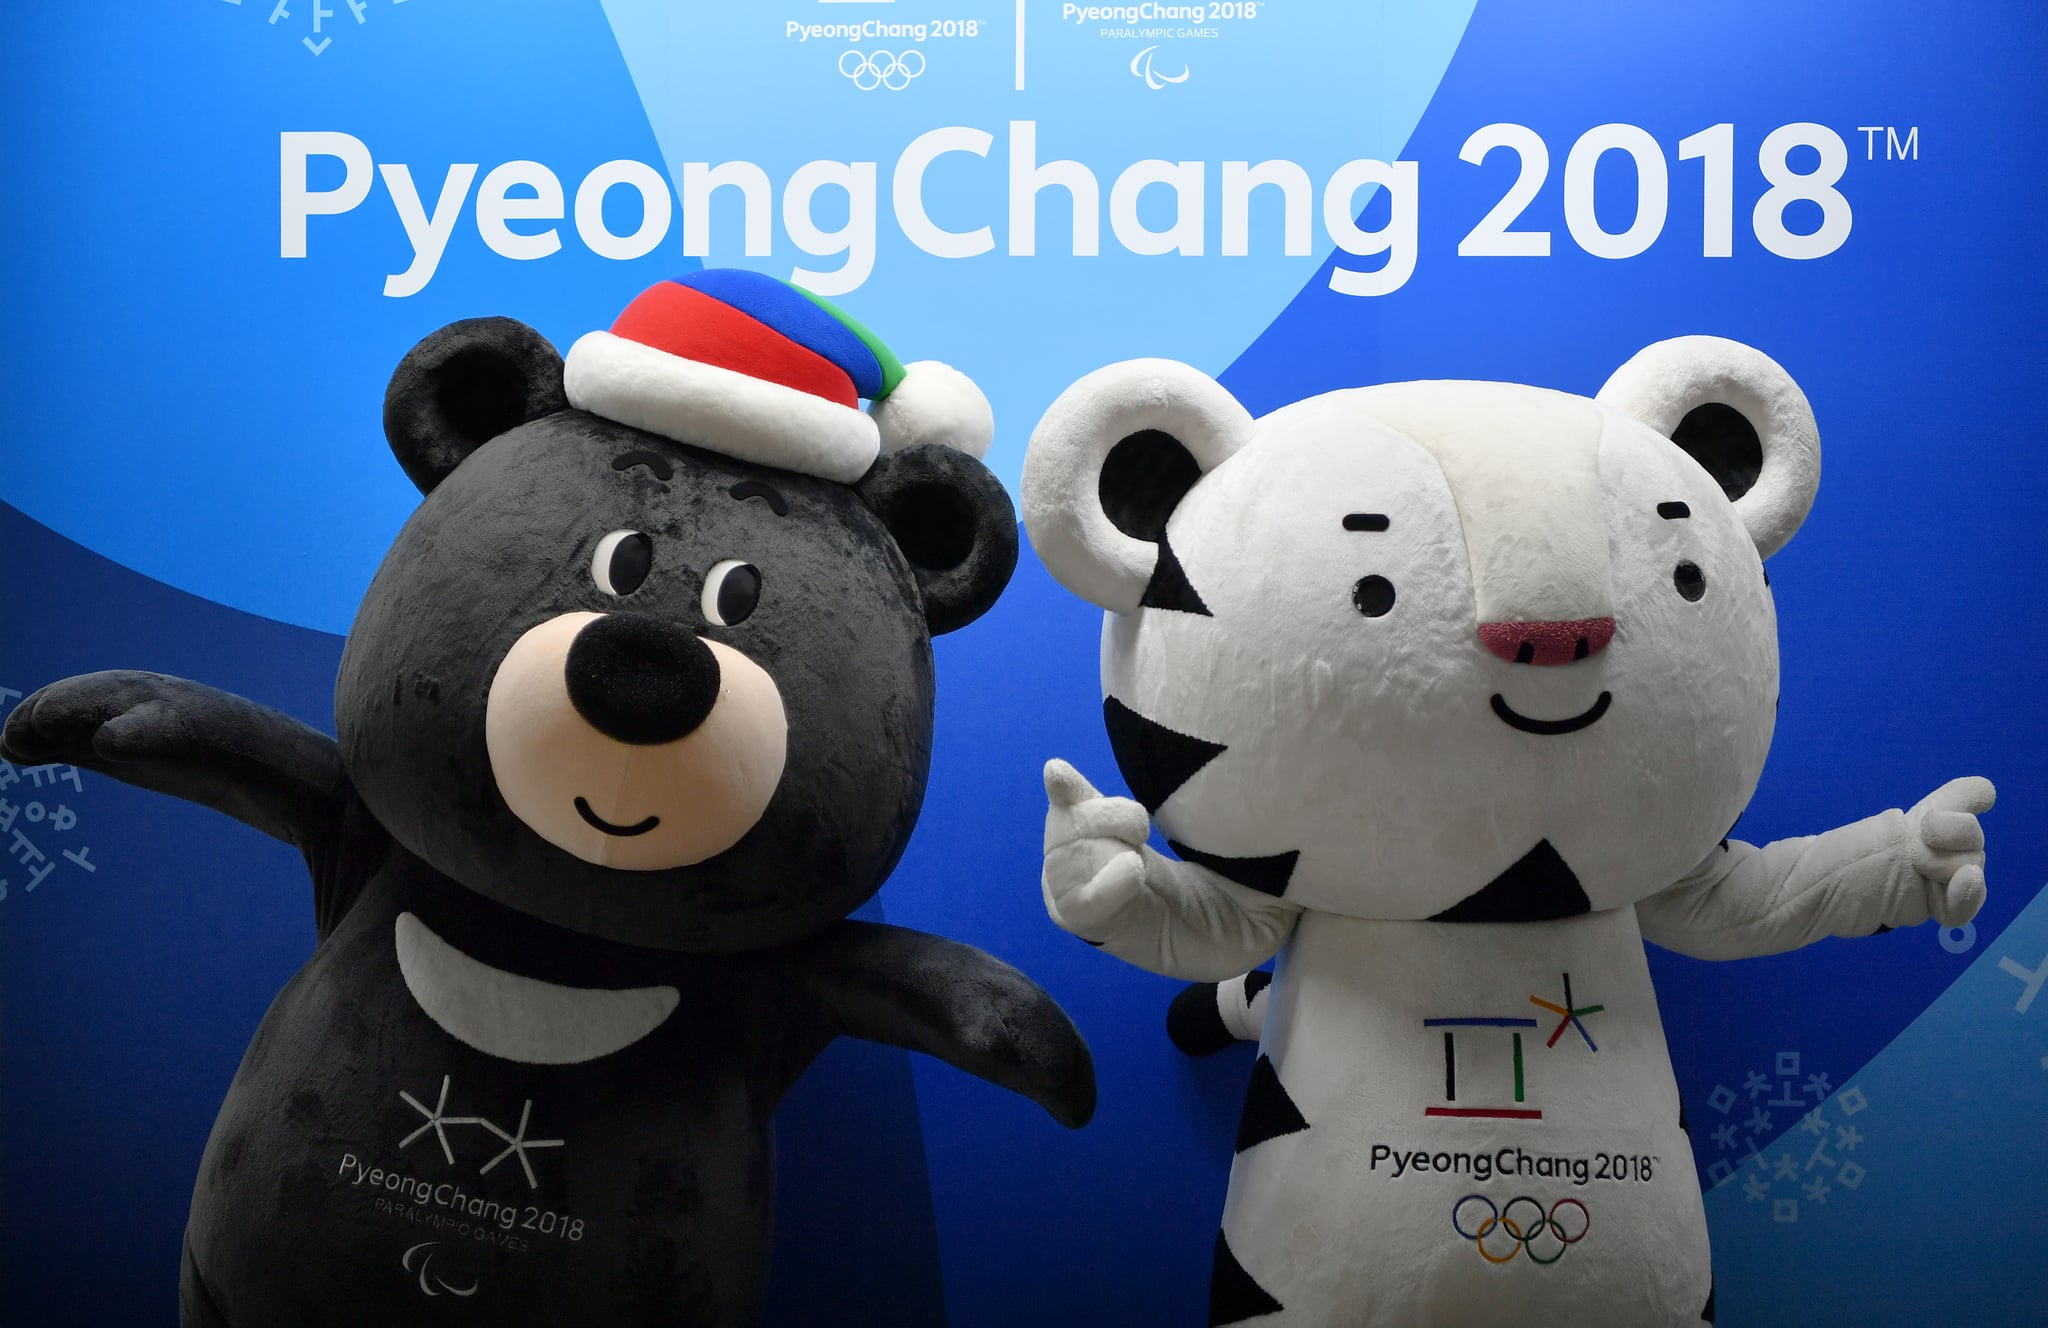 Get set for the Winter Olympics with the PyeongChang 2018 Official App